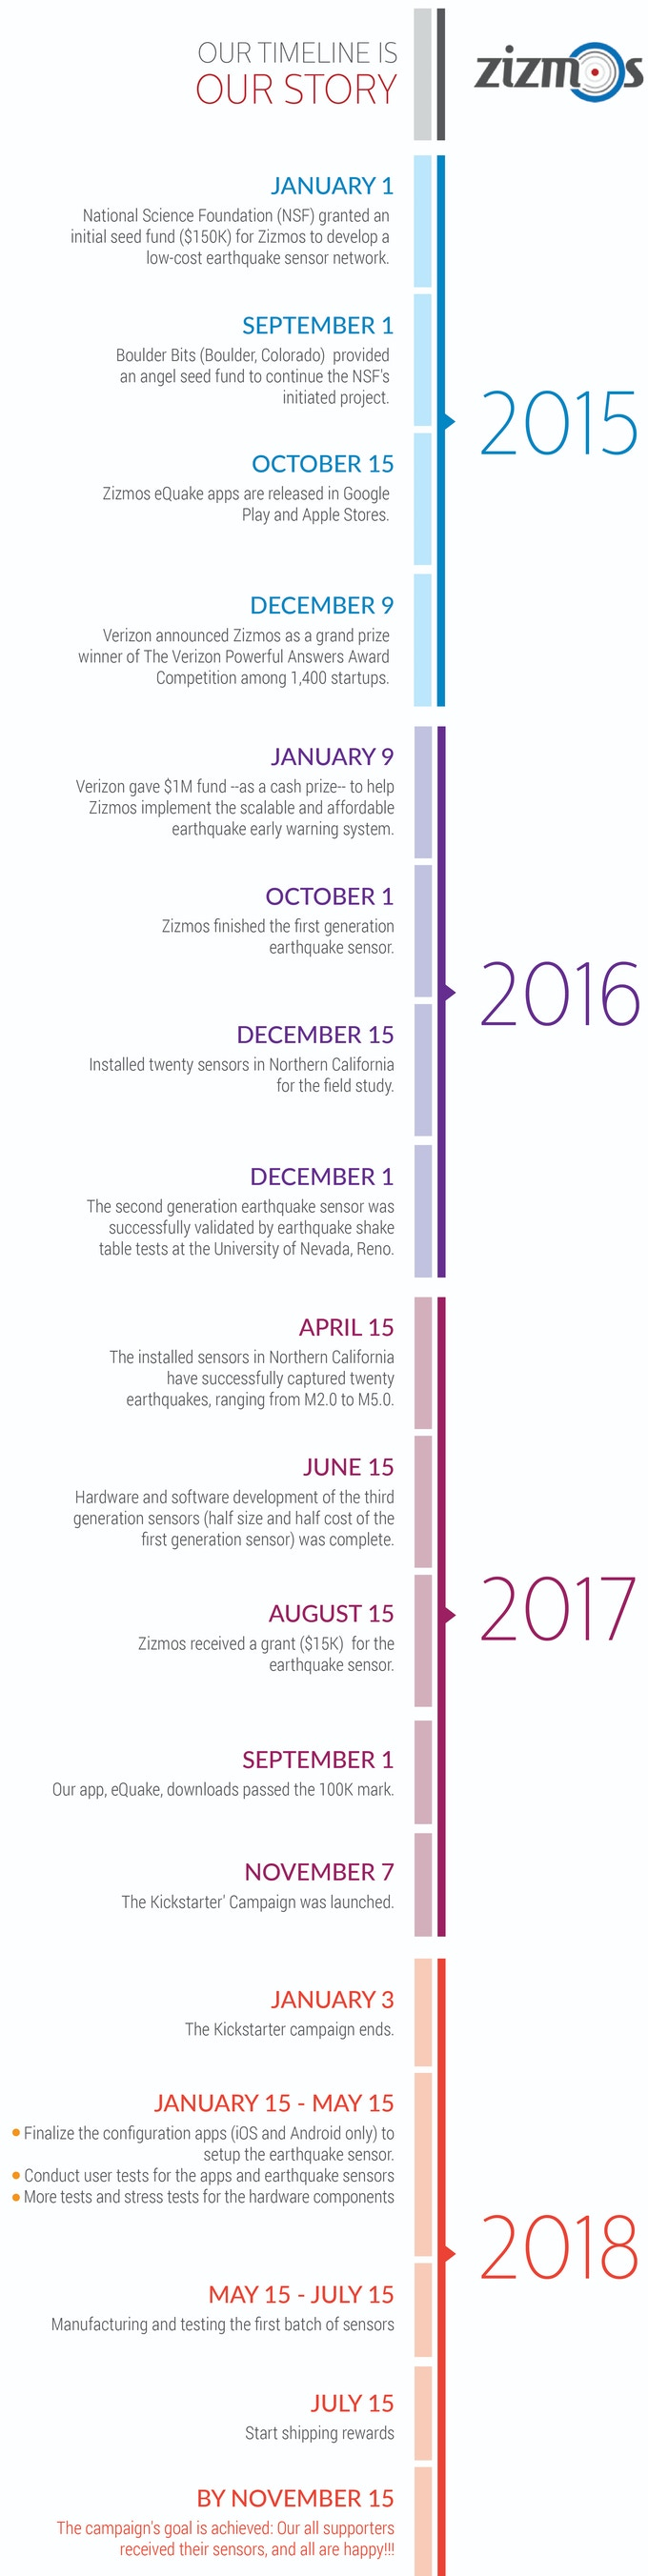 Timeline and Roadmap